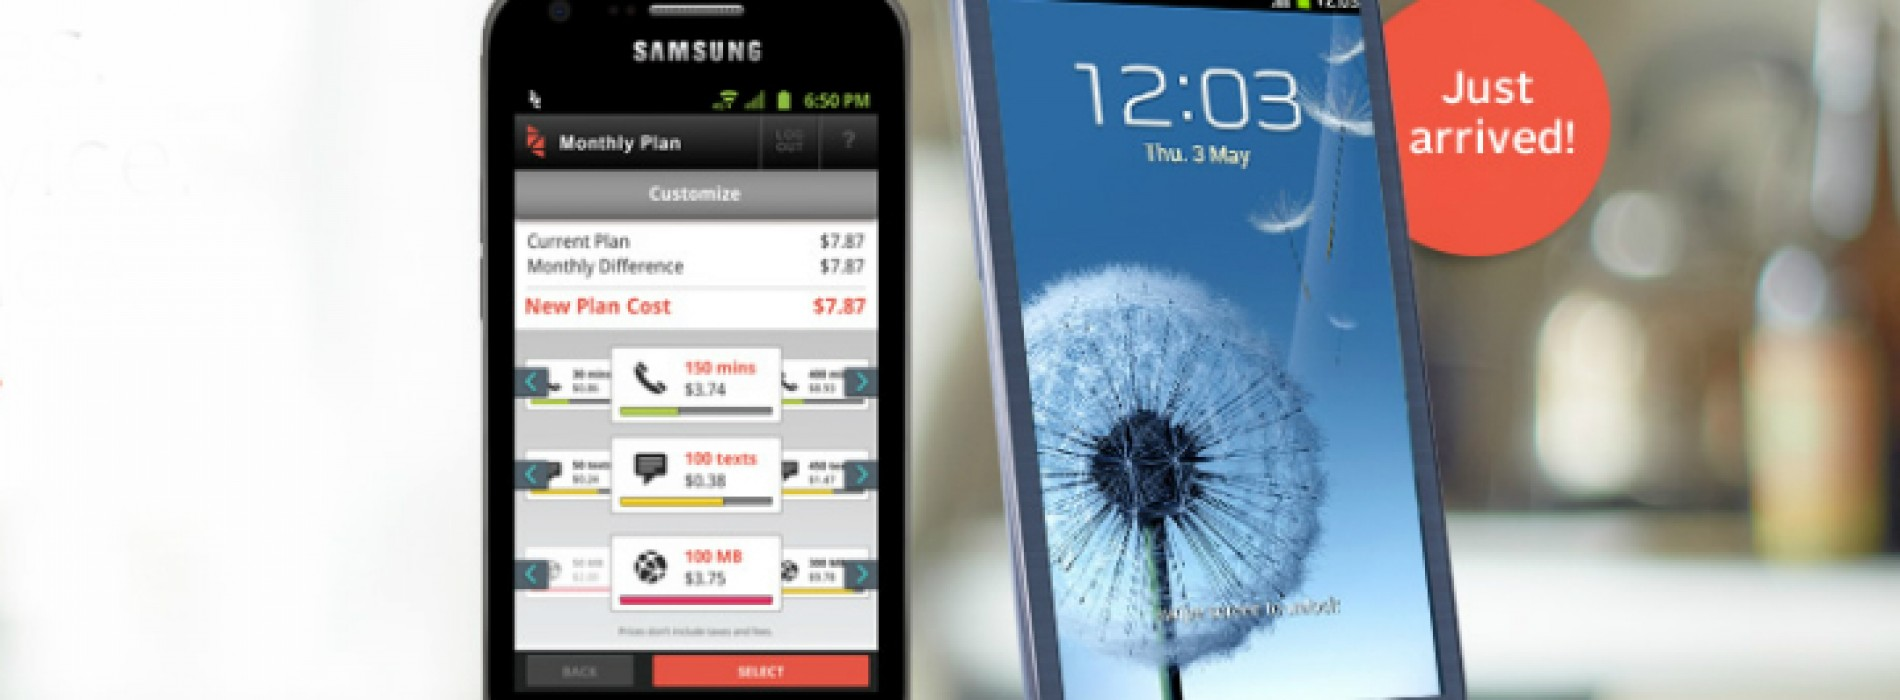 Zact adds Samsung Galaxy S3, Galaxy Victory to smartphone lineup